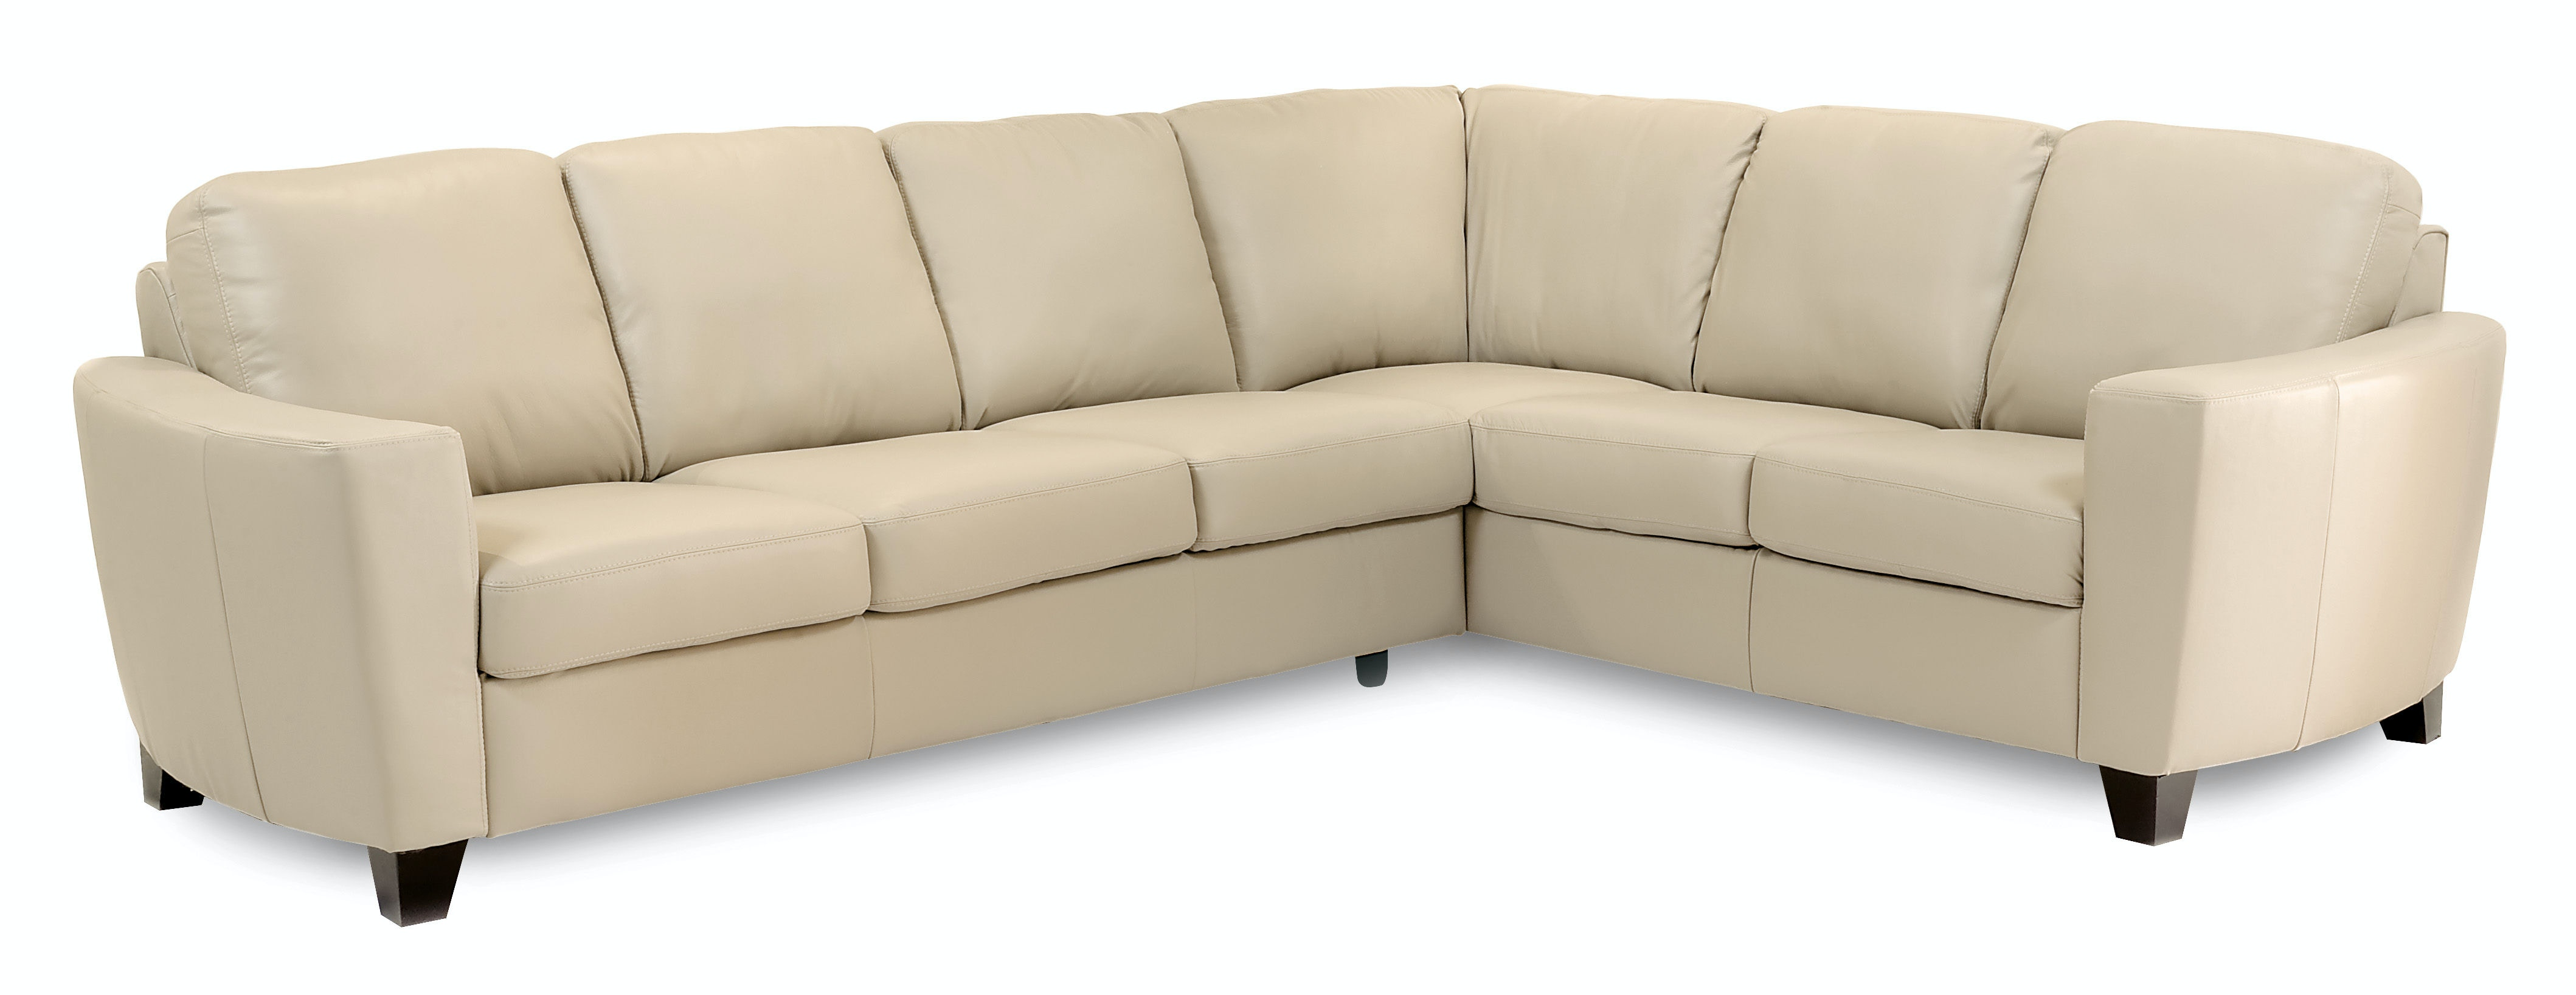 Palliser Furniture Leeds Sectional